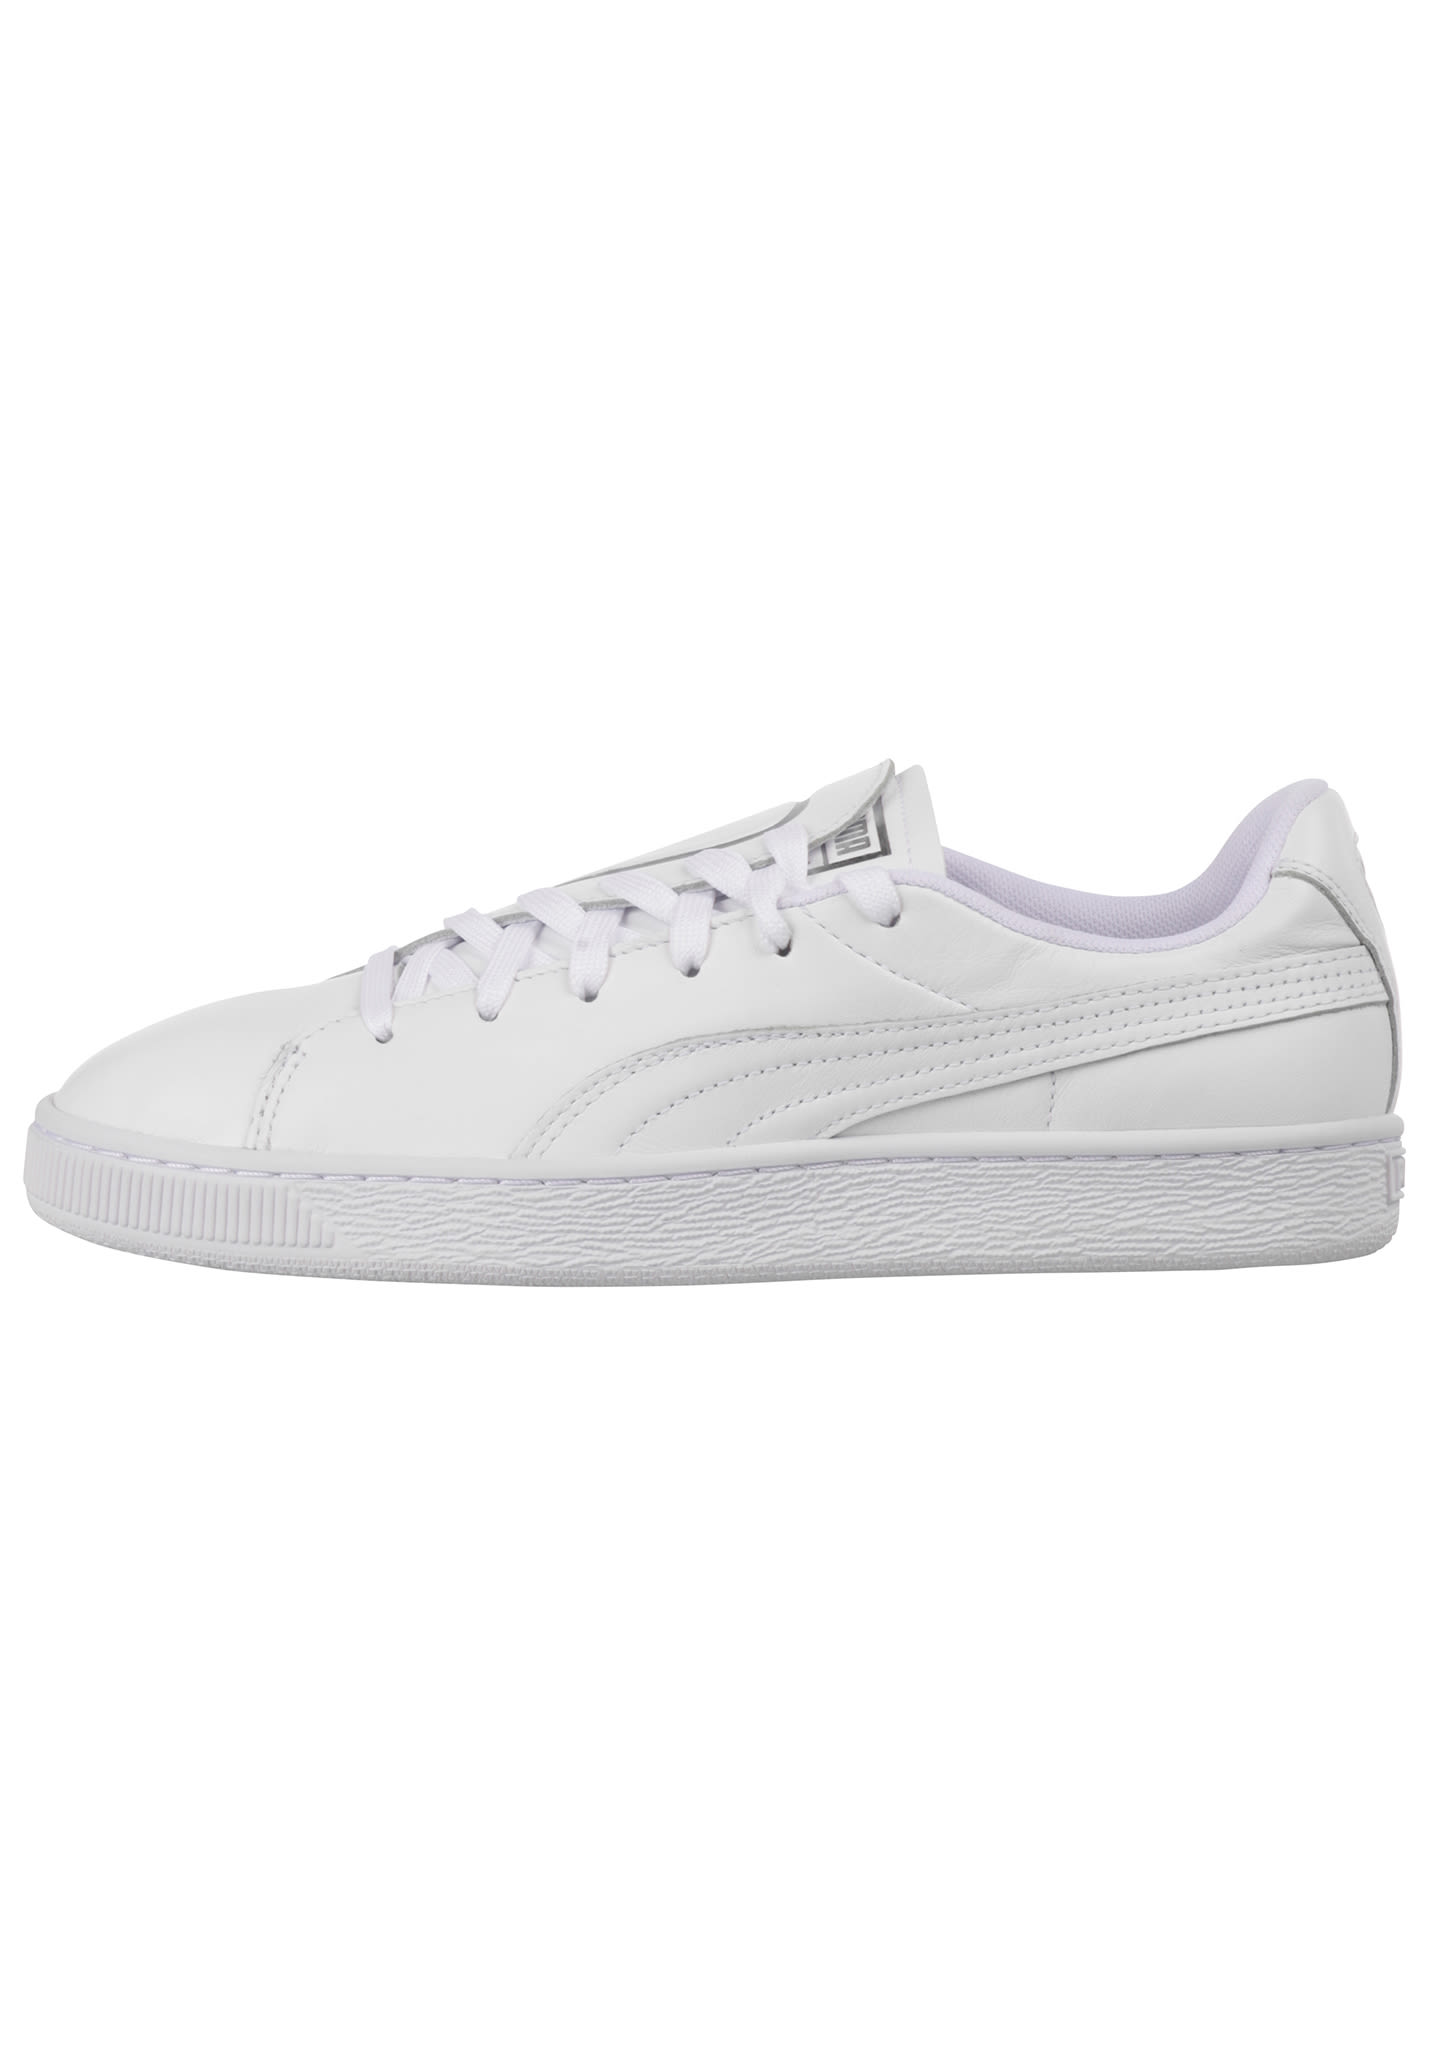 9d7abf670efc0b Puma Basket Crush Emboss - Sneakers voor Dames - Wit - Planet Sports